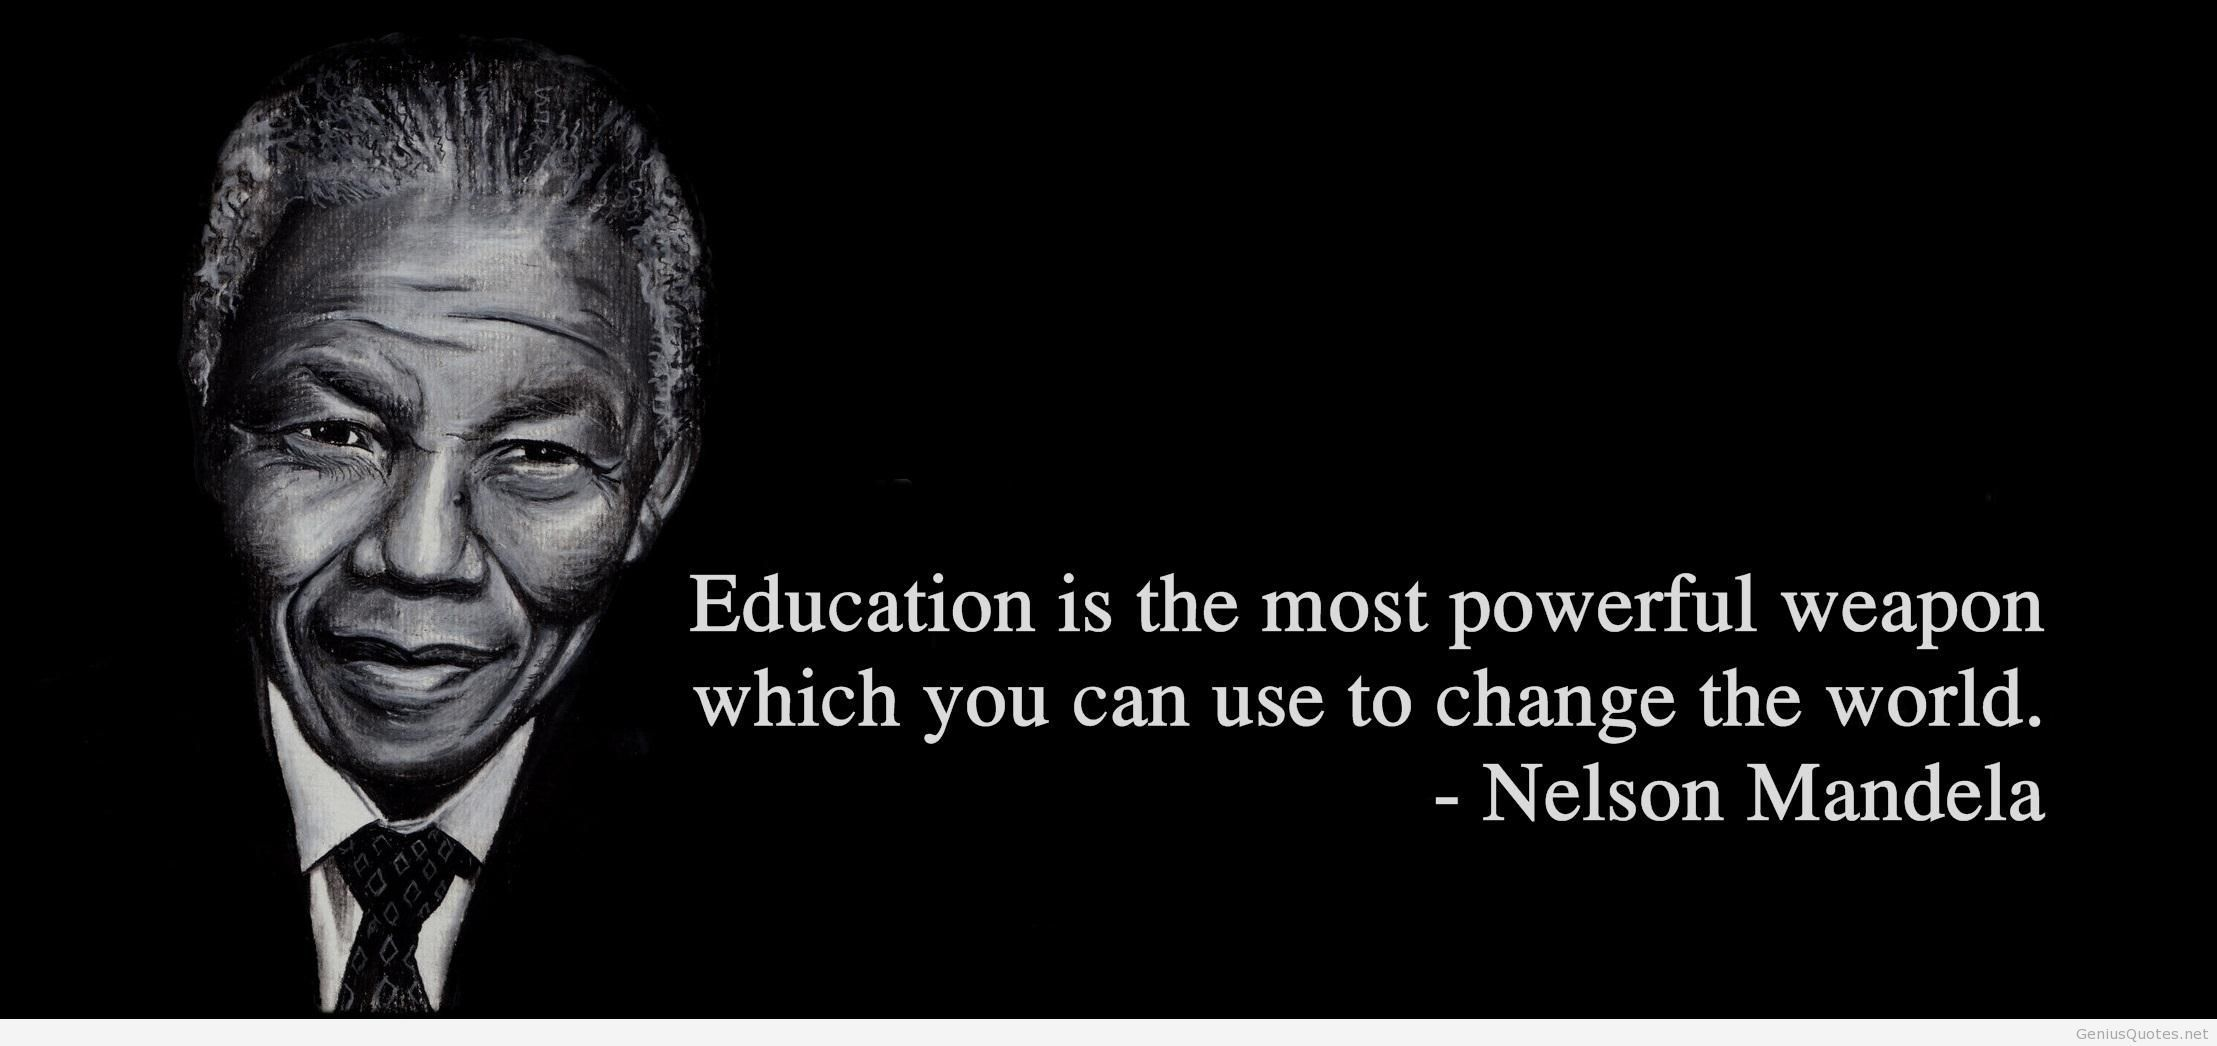 Inspirational Quotes By Nelson Mandela Inspirational Quotes By